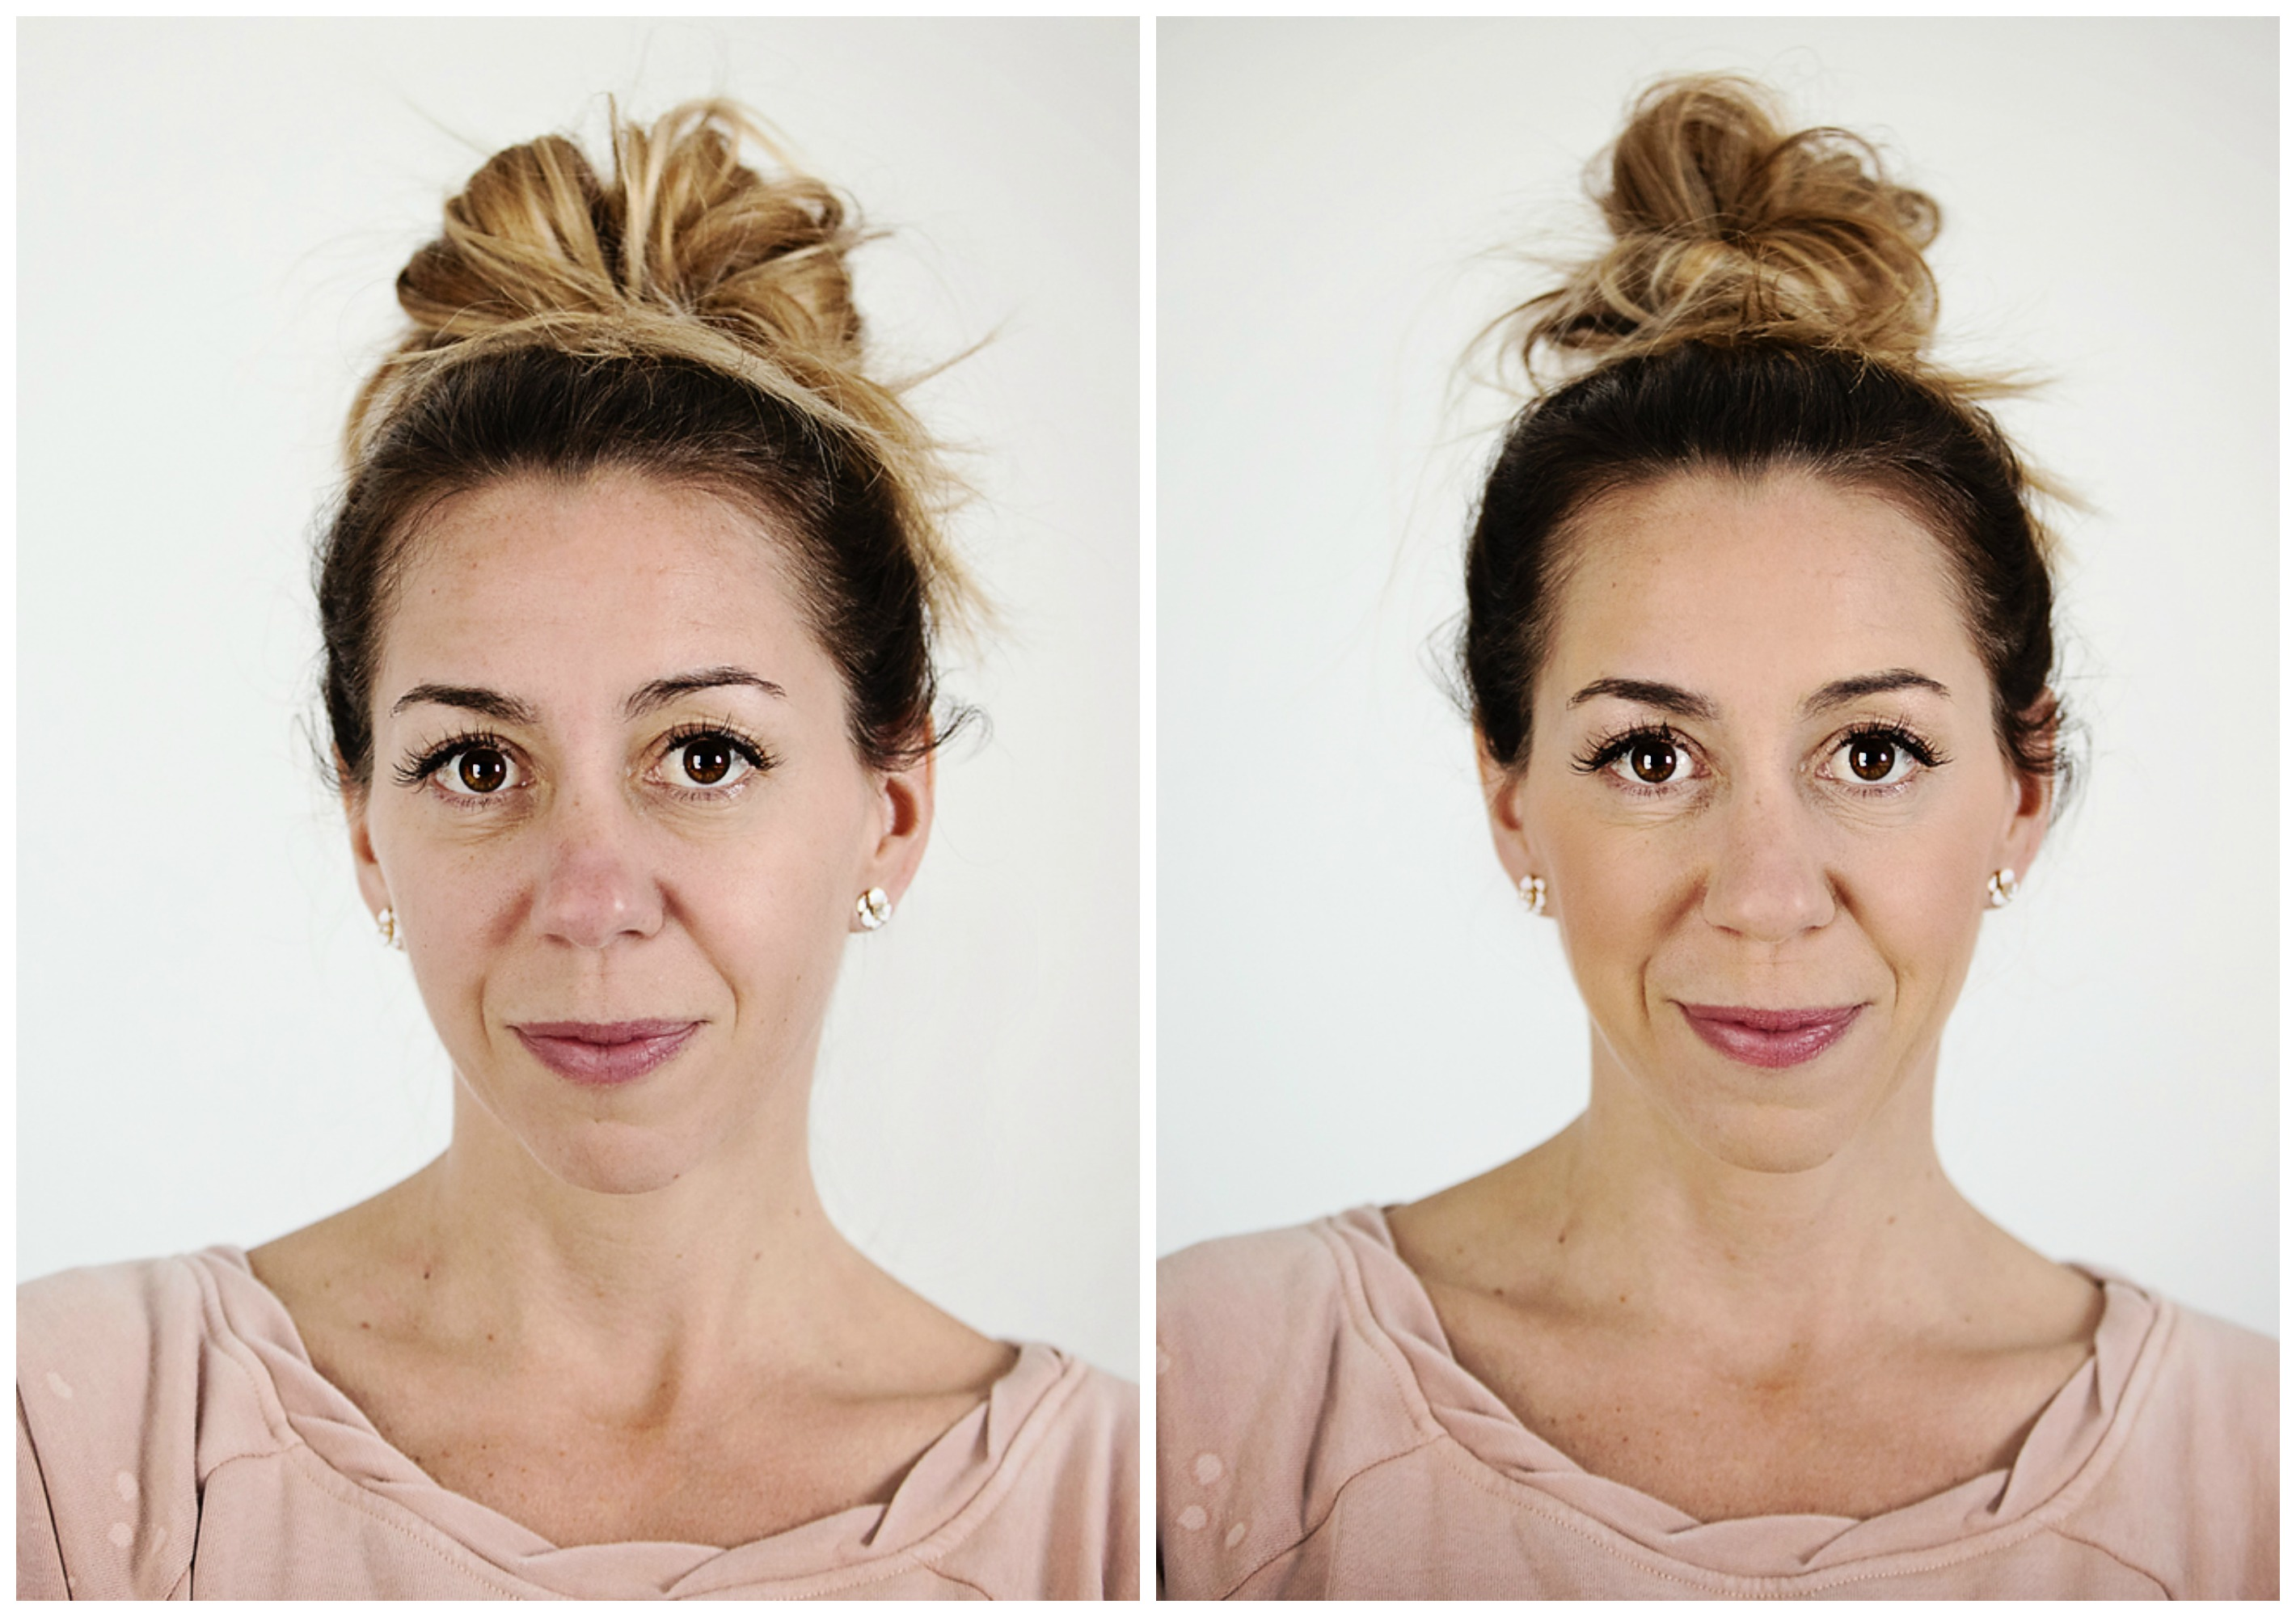 How To Conceal Dark Circles With